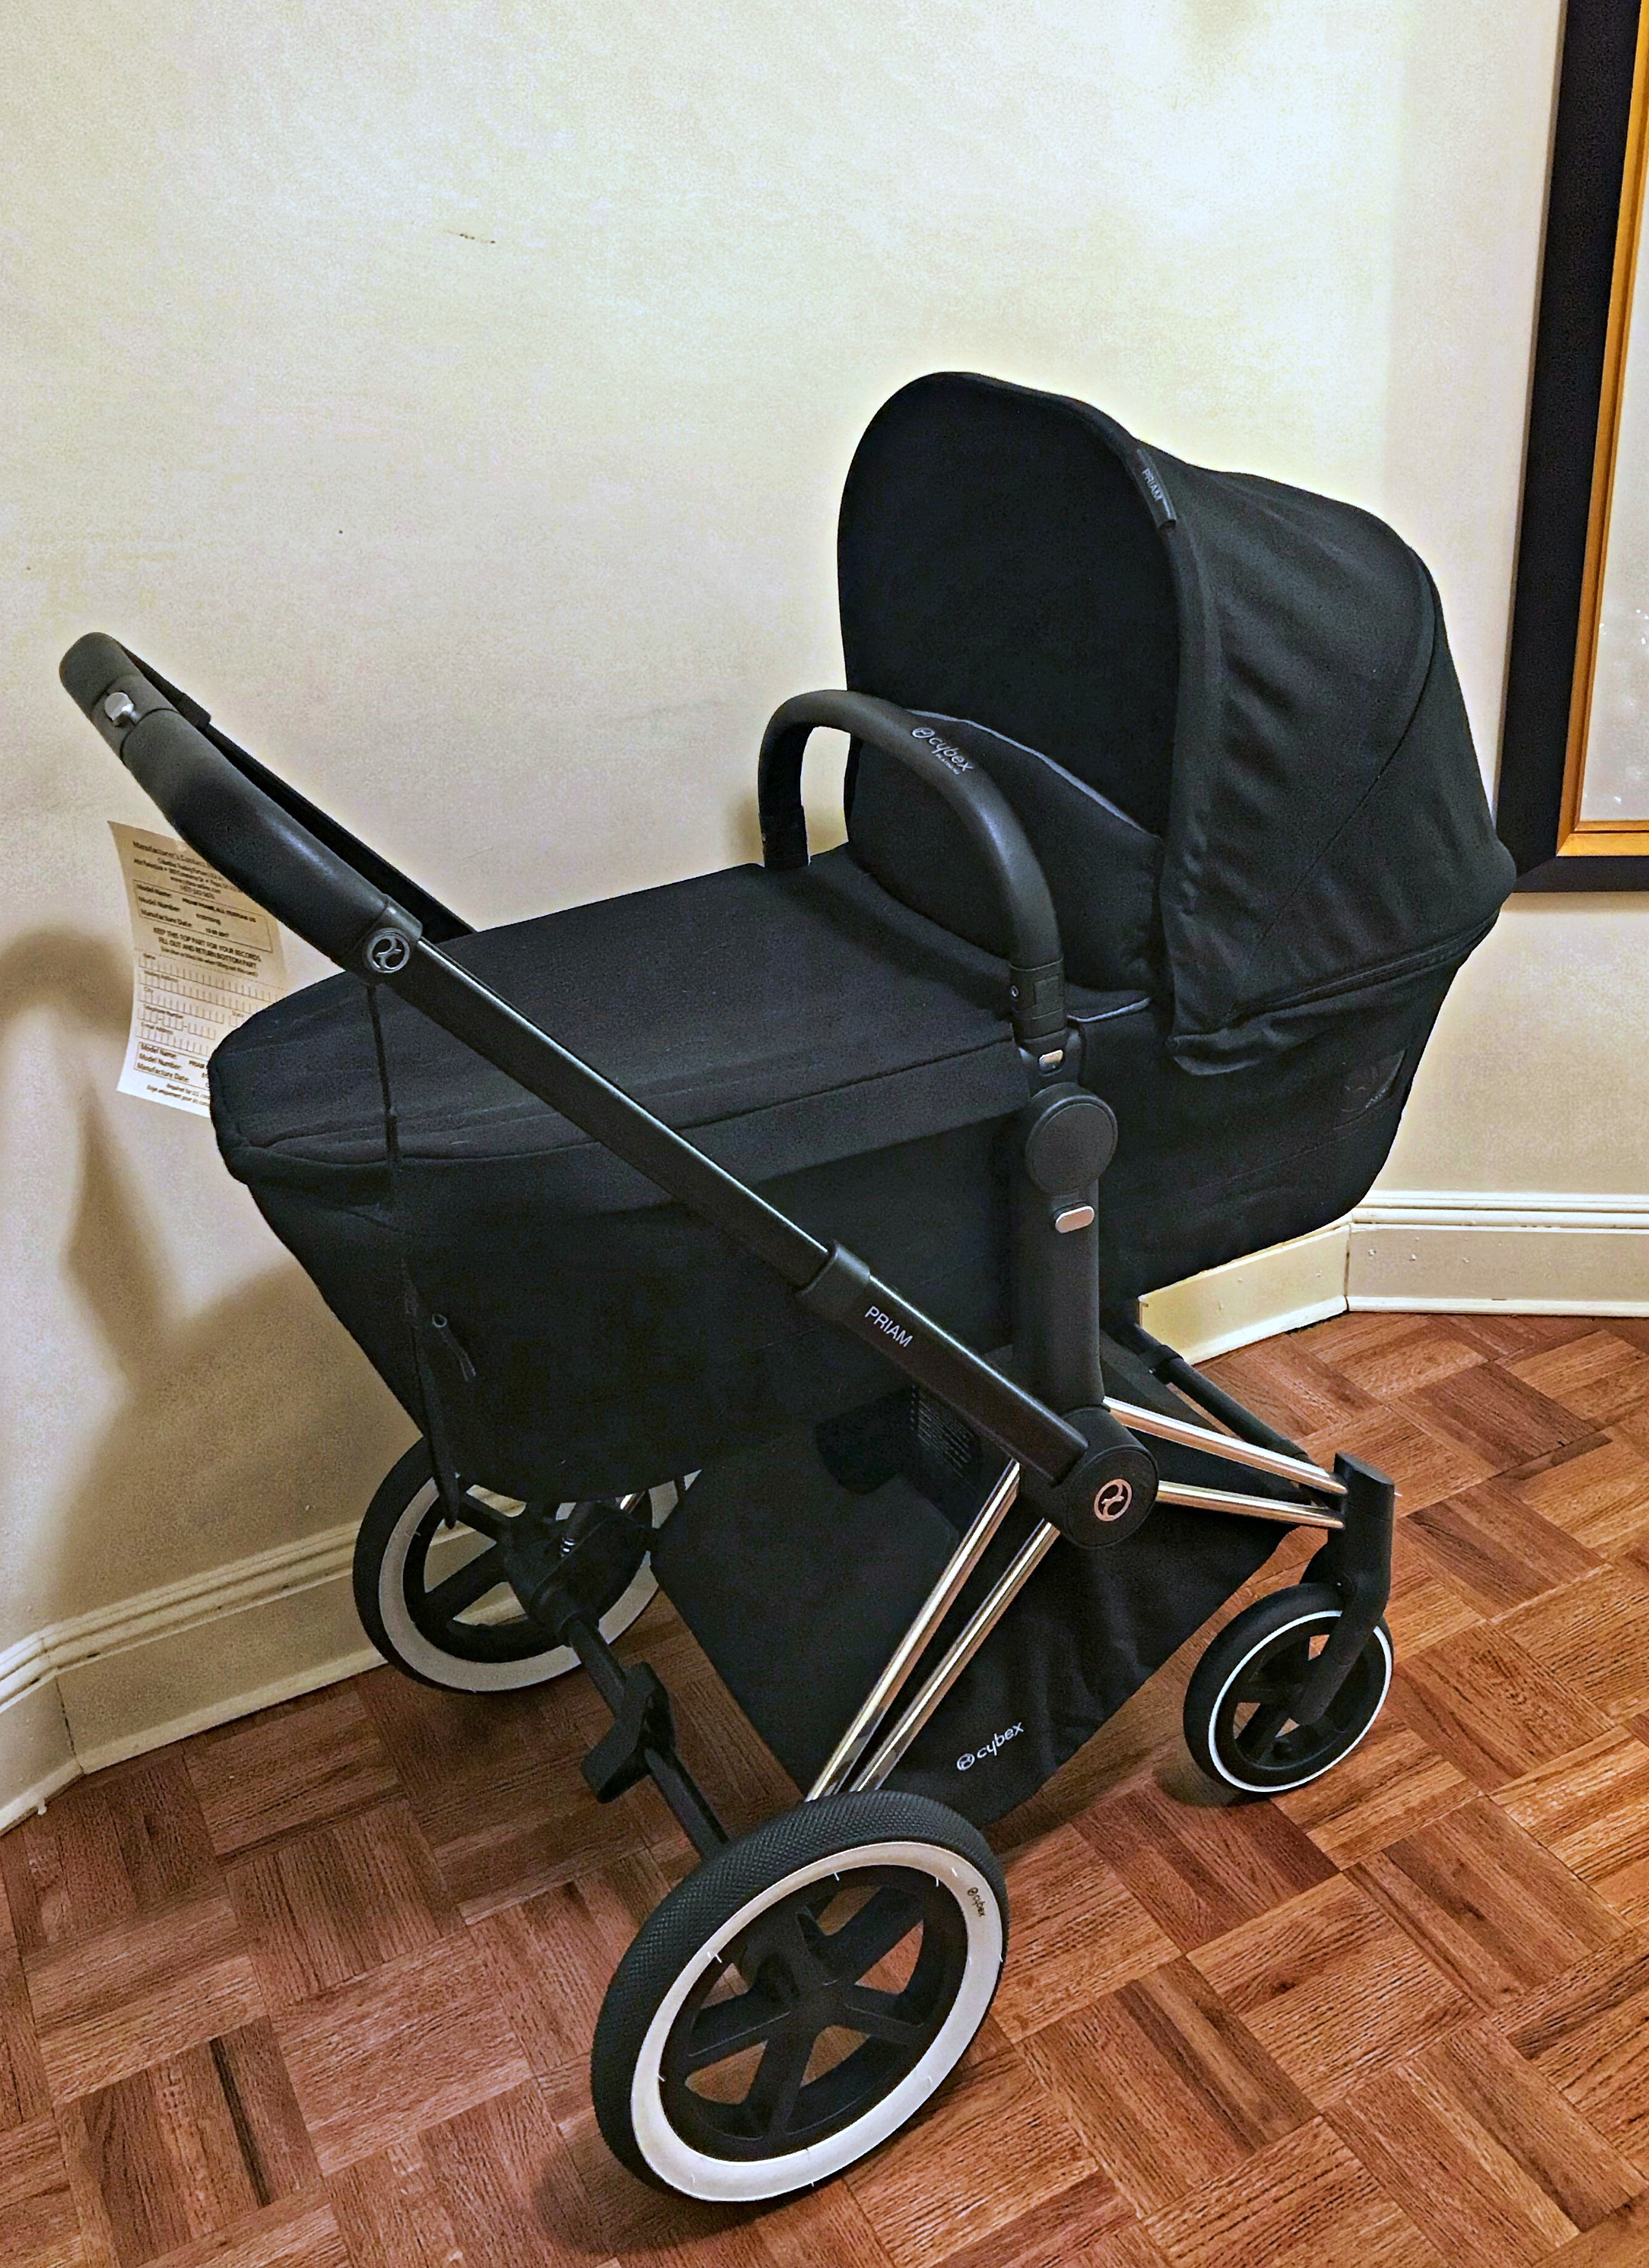 cybex stroller base and 2-in-1 seat